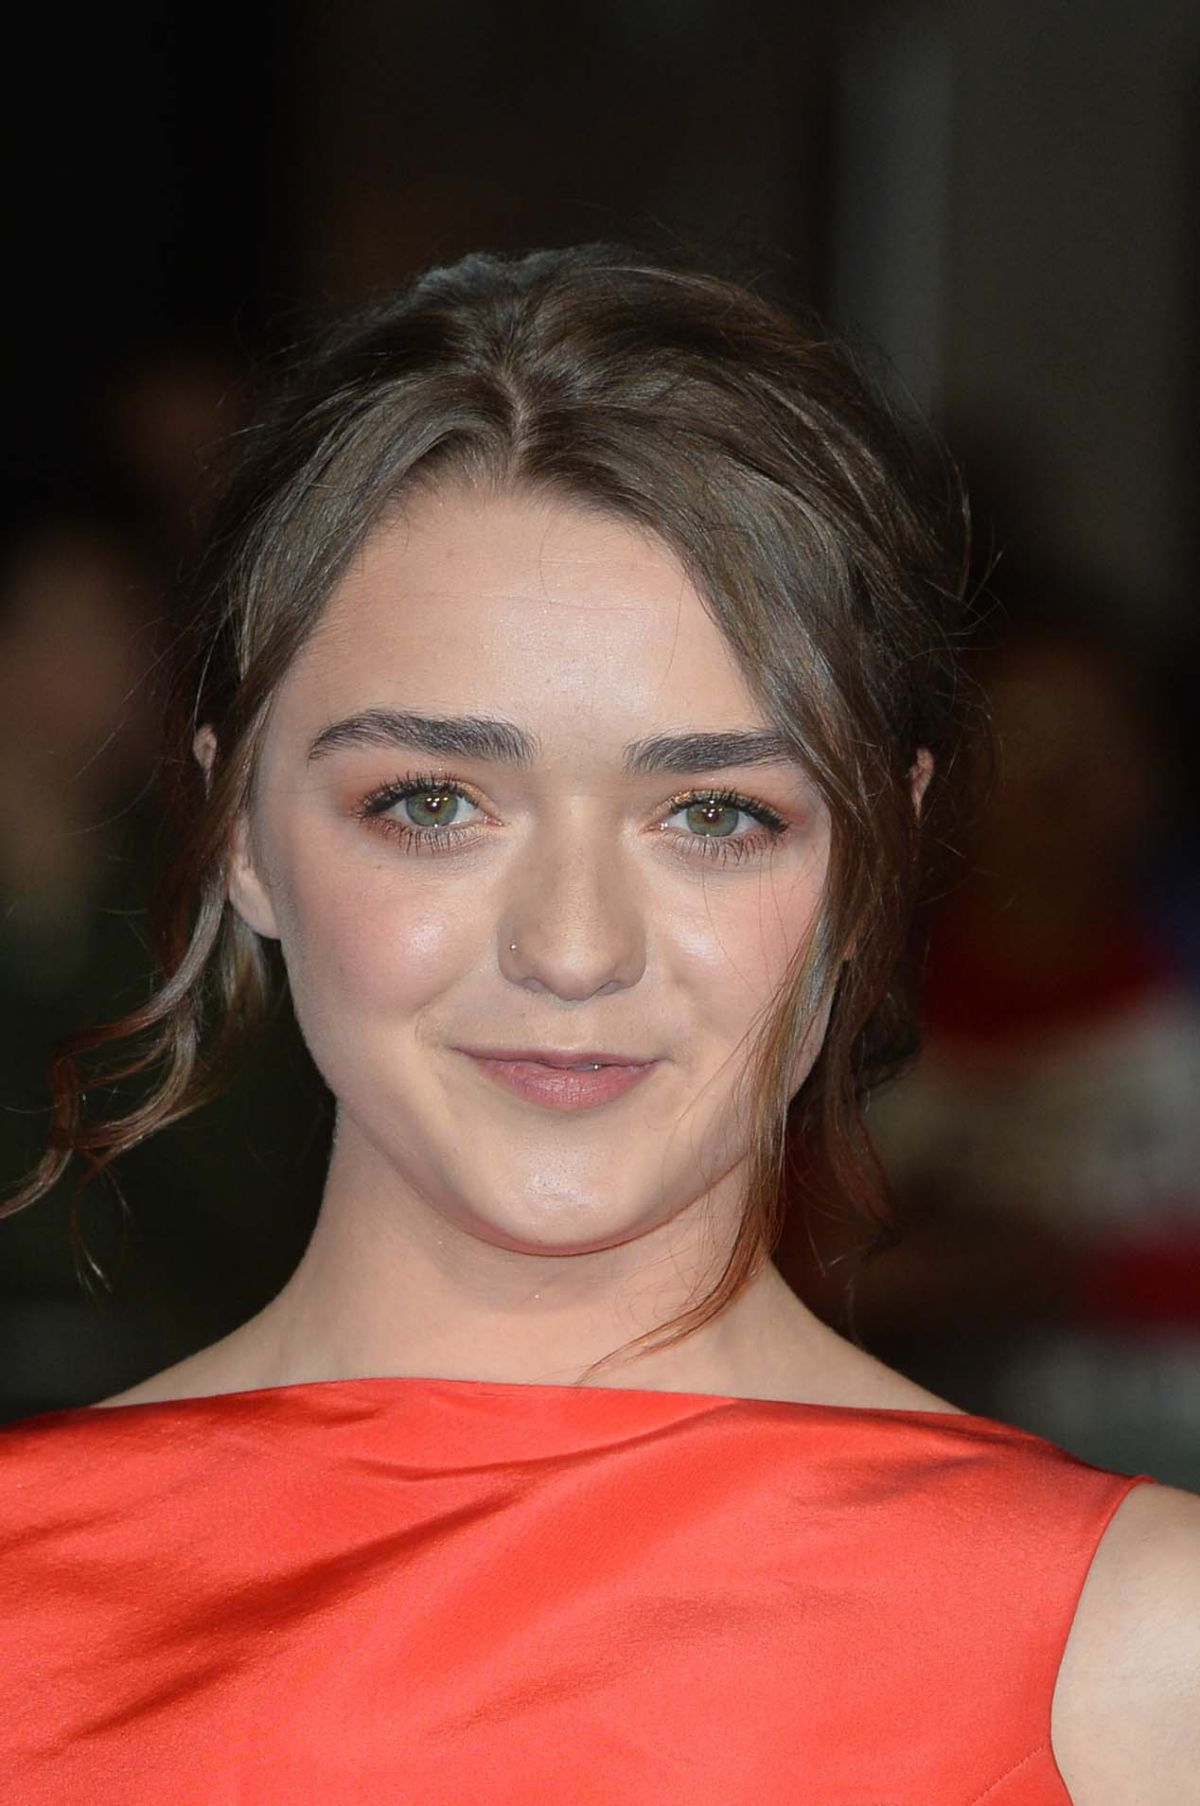 maisie williams - photo #41